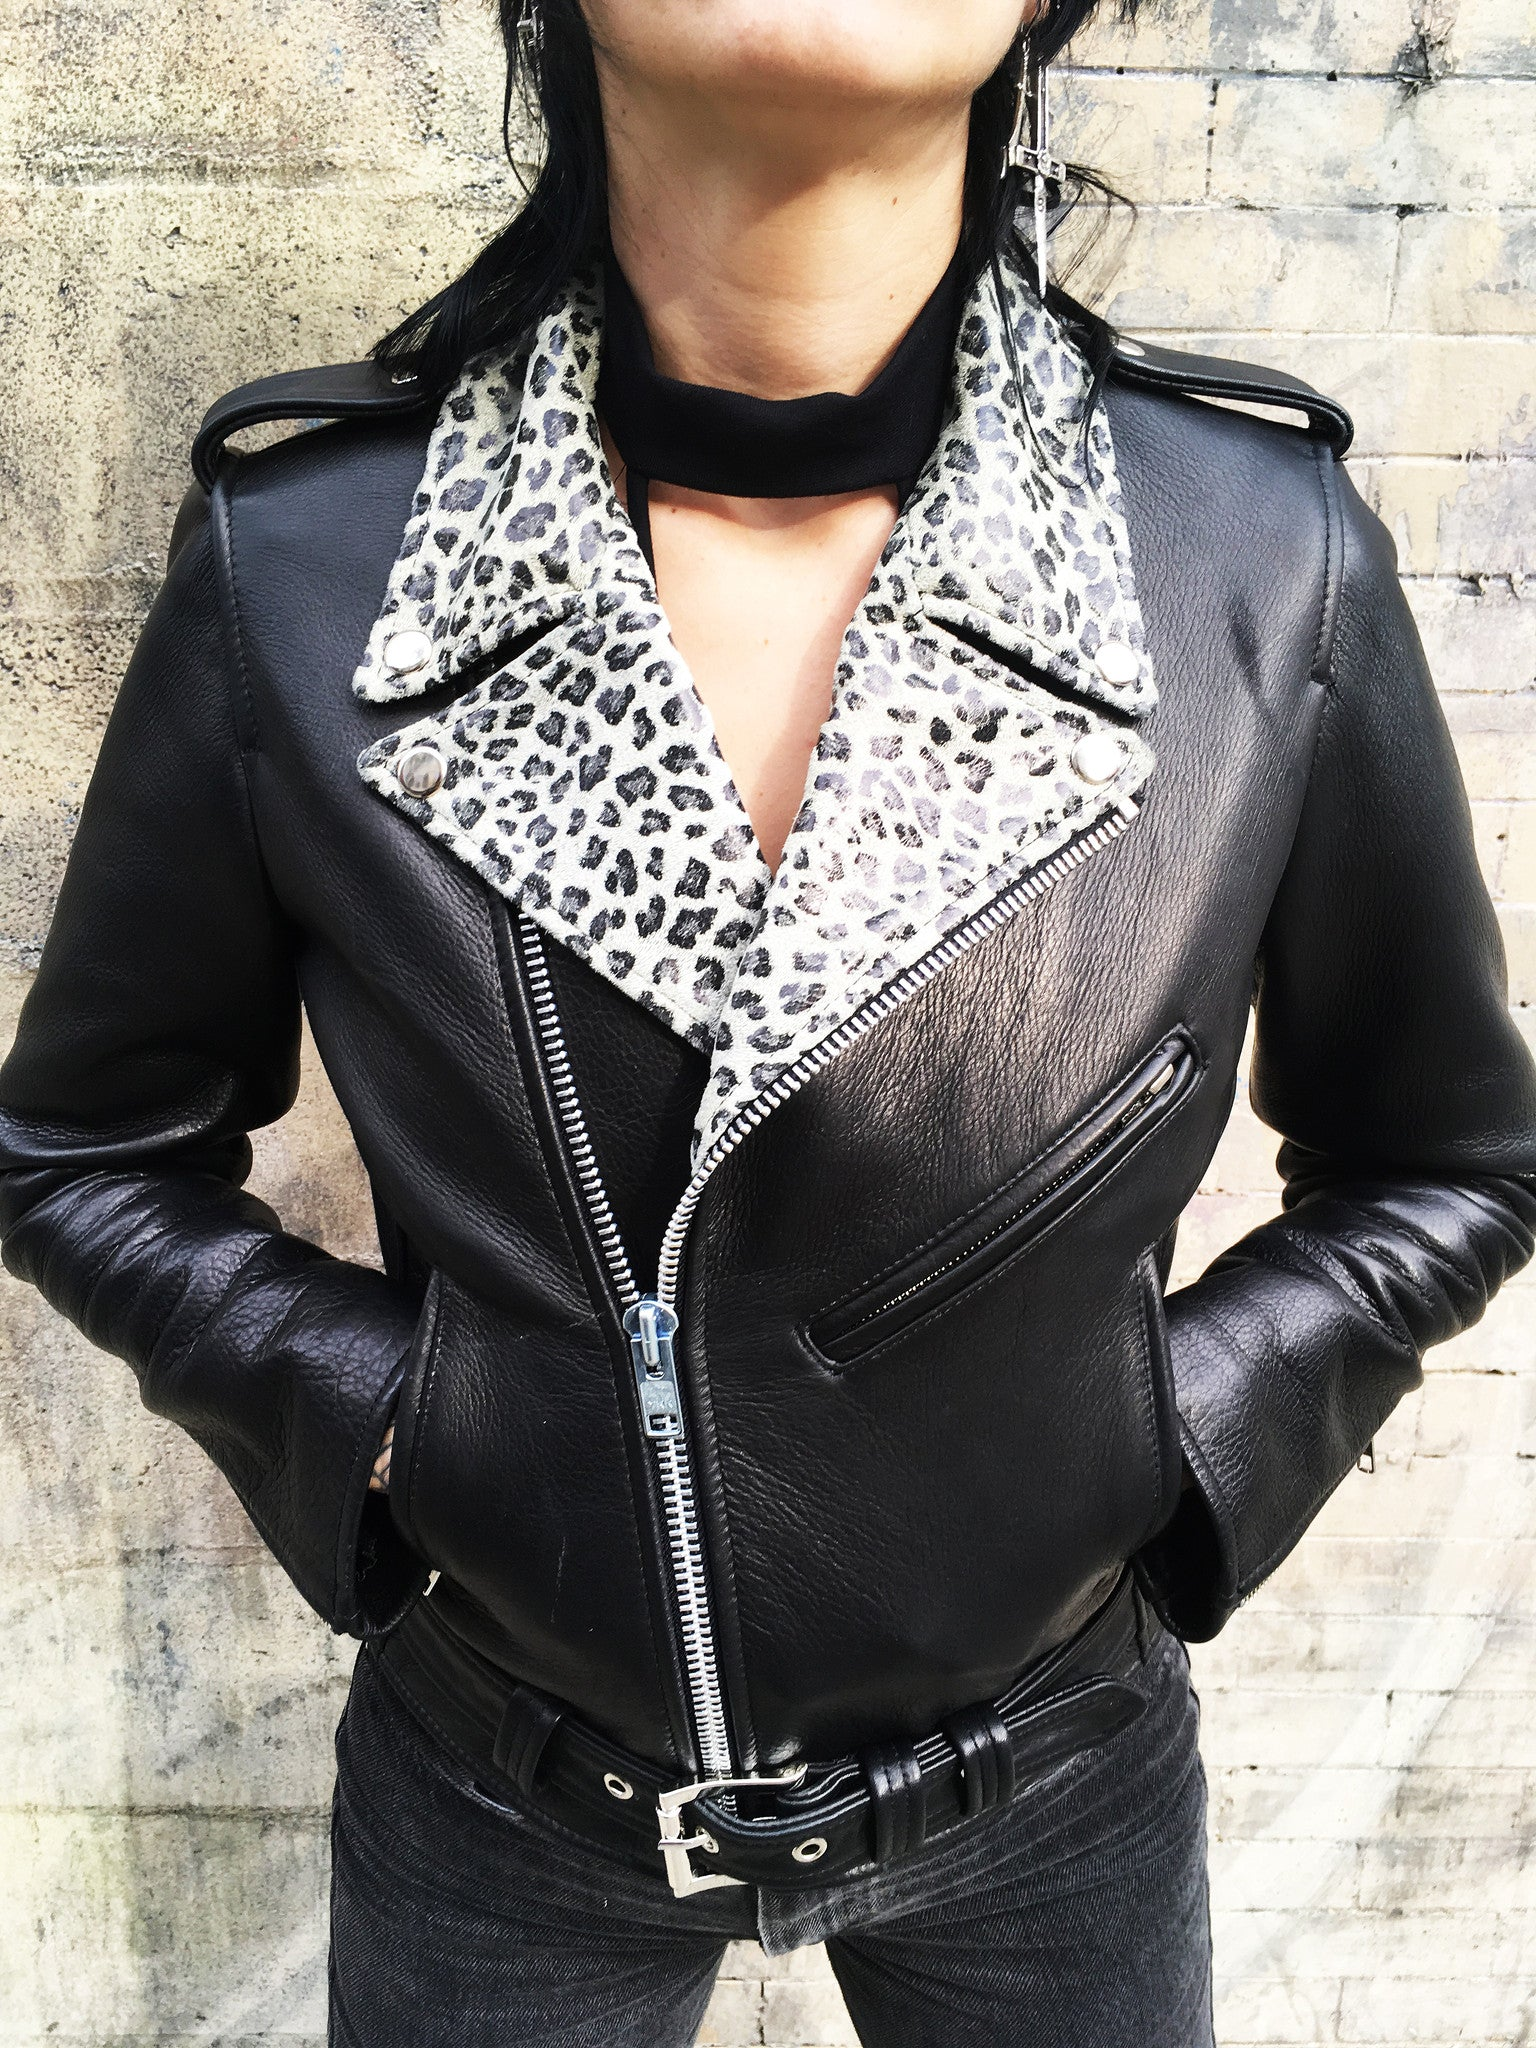 WOMEN'S BOWERY MOTORCYCLE JACKET White/Grey Cheetah Lapels